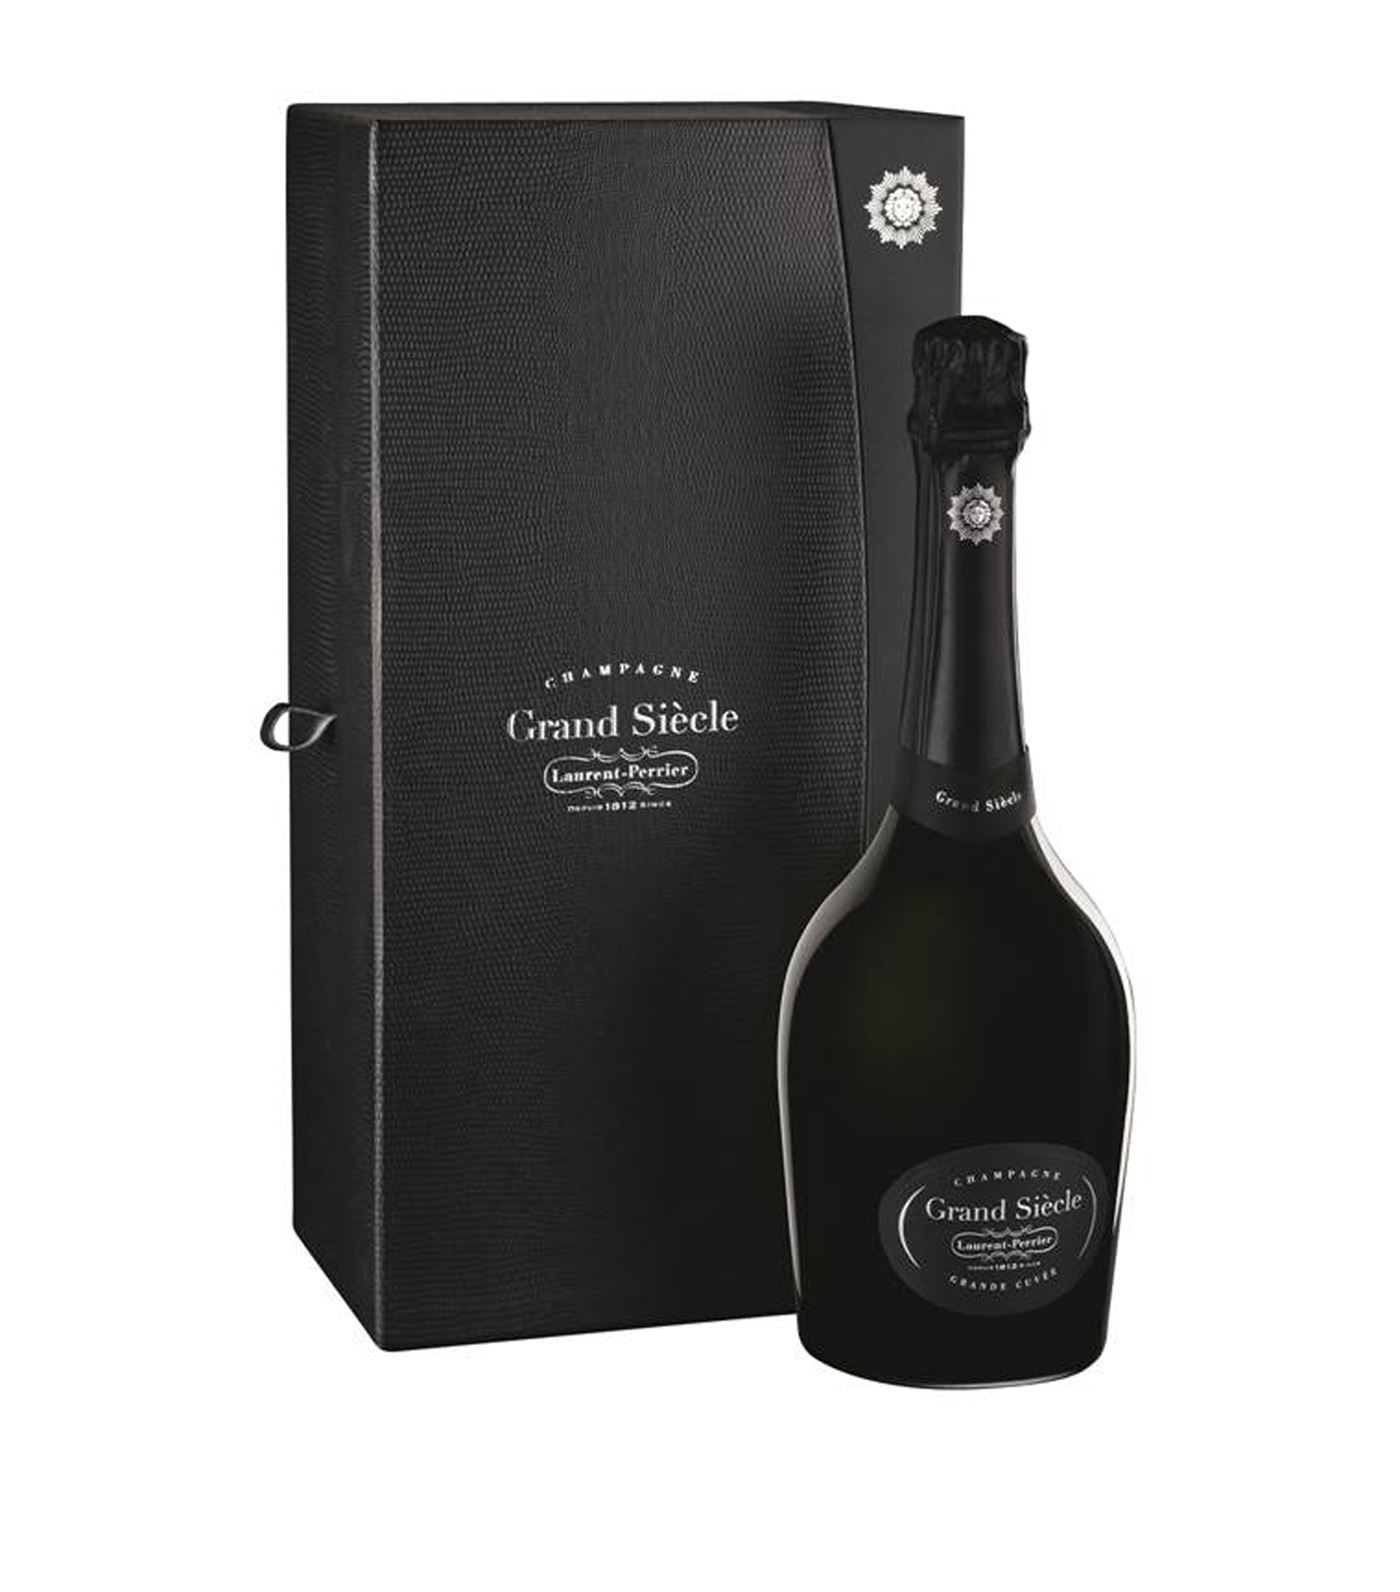 Laurent-Perrier Grand Siecle NV